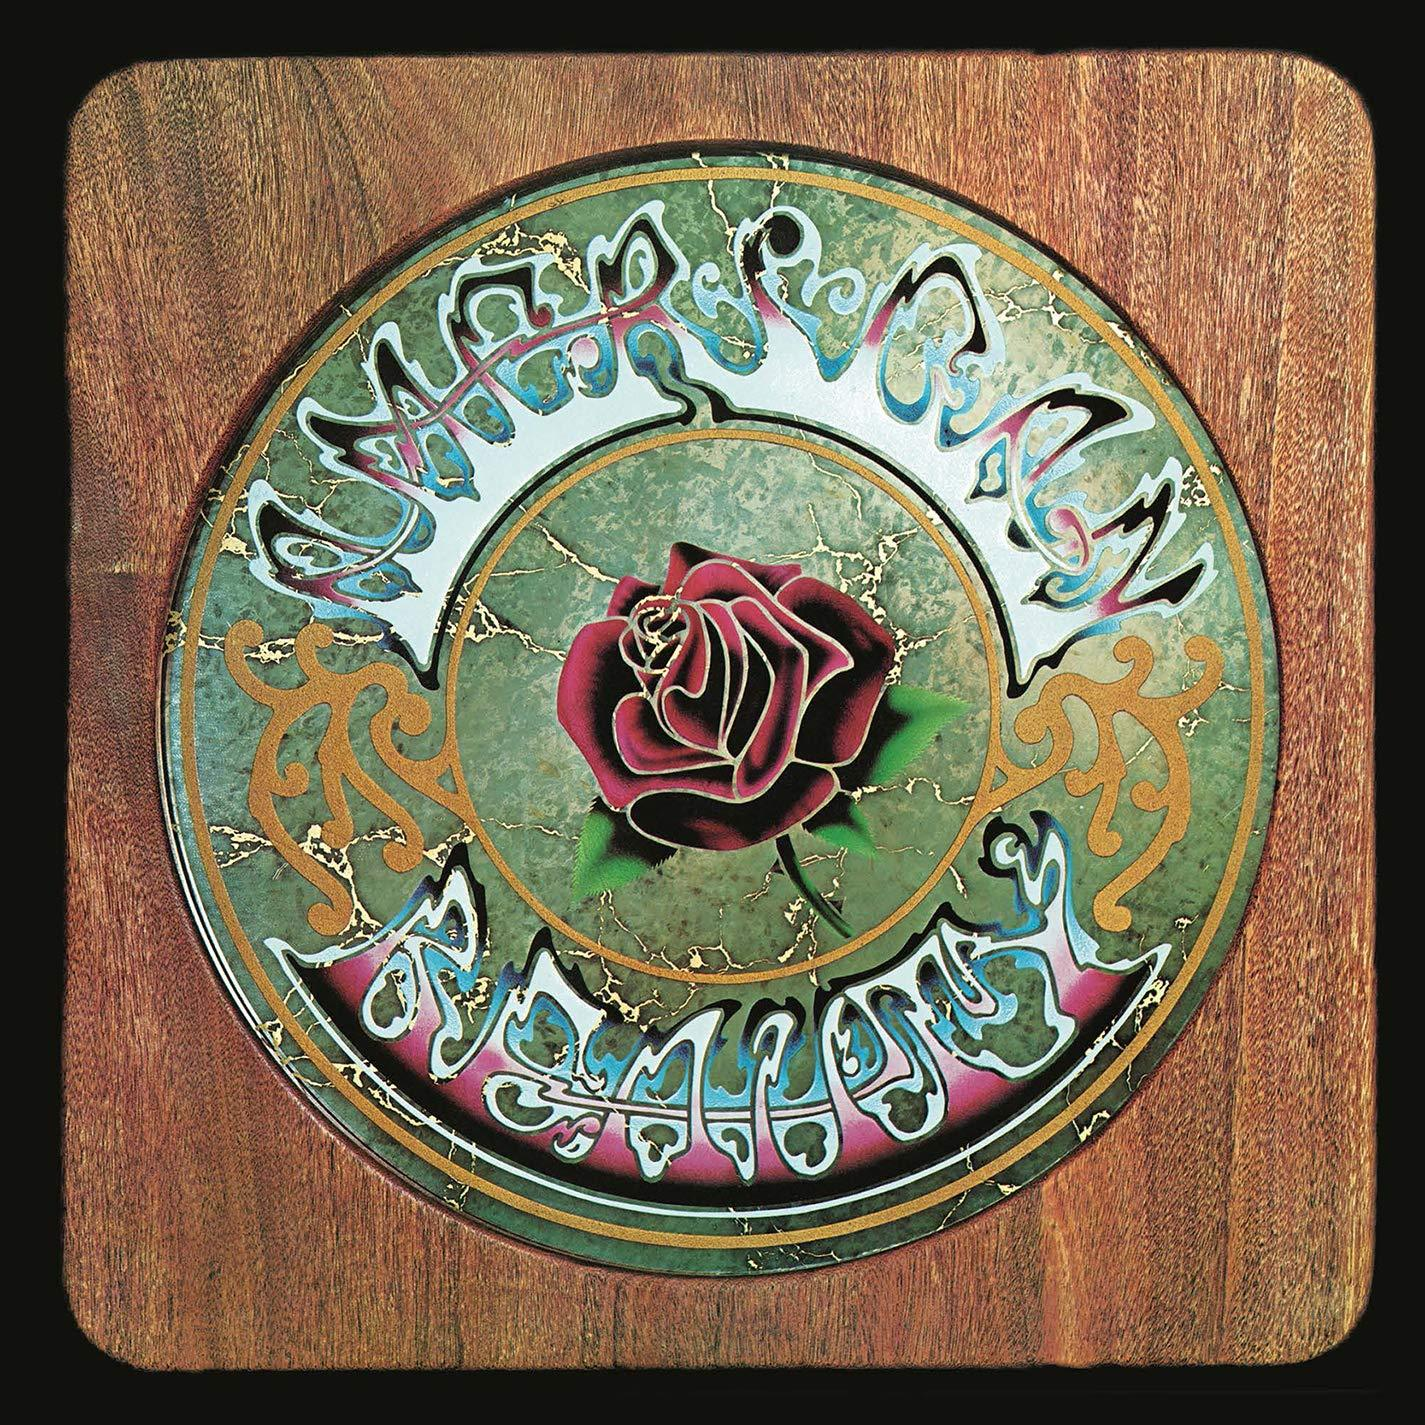 Grateful Dead - American Beauty [LP] (50th Anniversary, Picture Disc, customized album artwork on each side, limited)